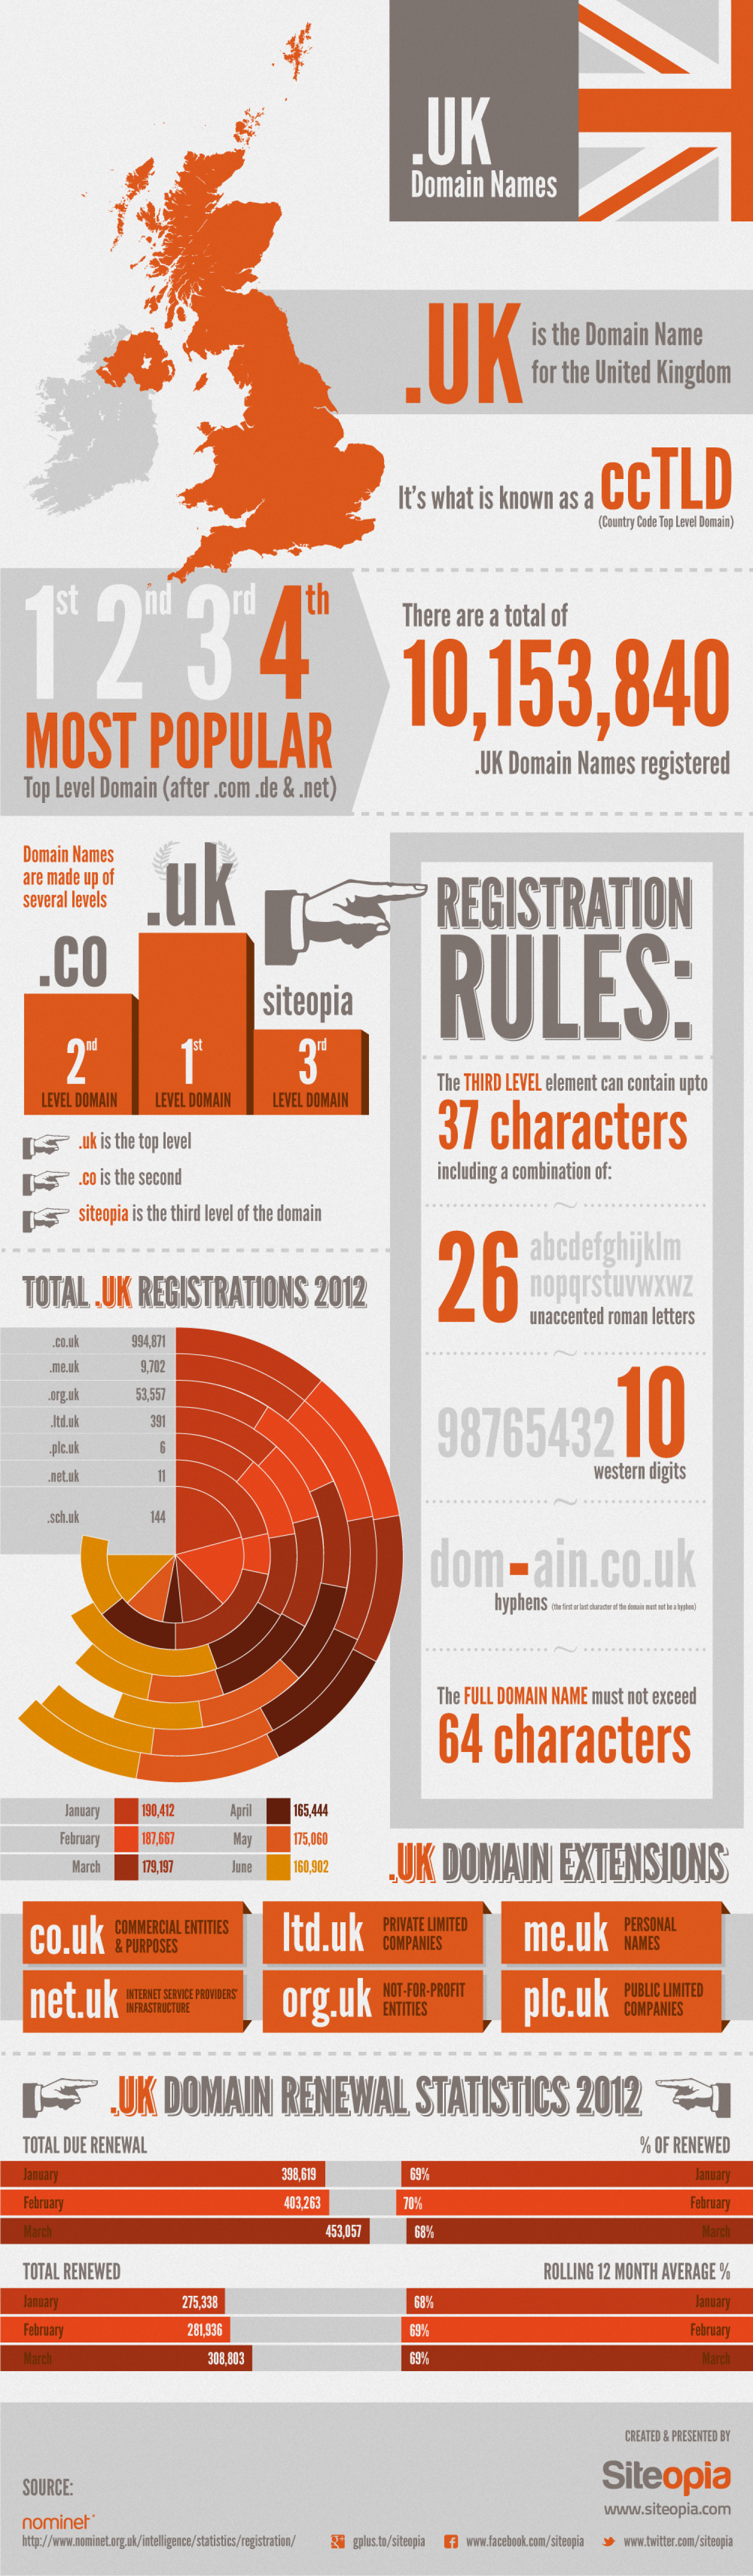 .UK Domain Names Infographic